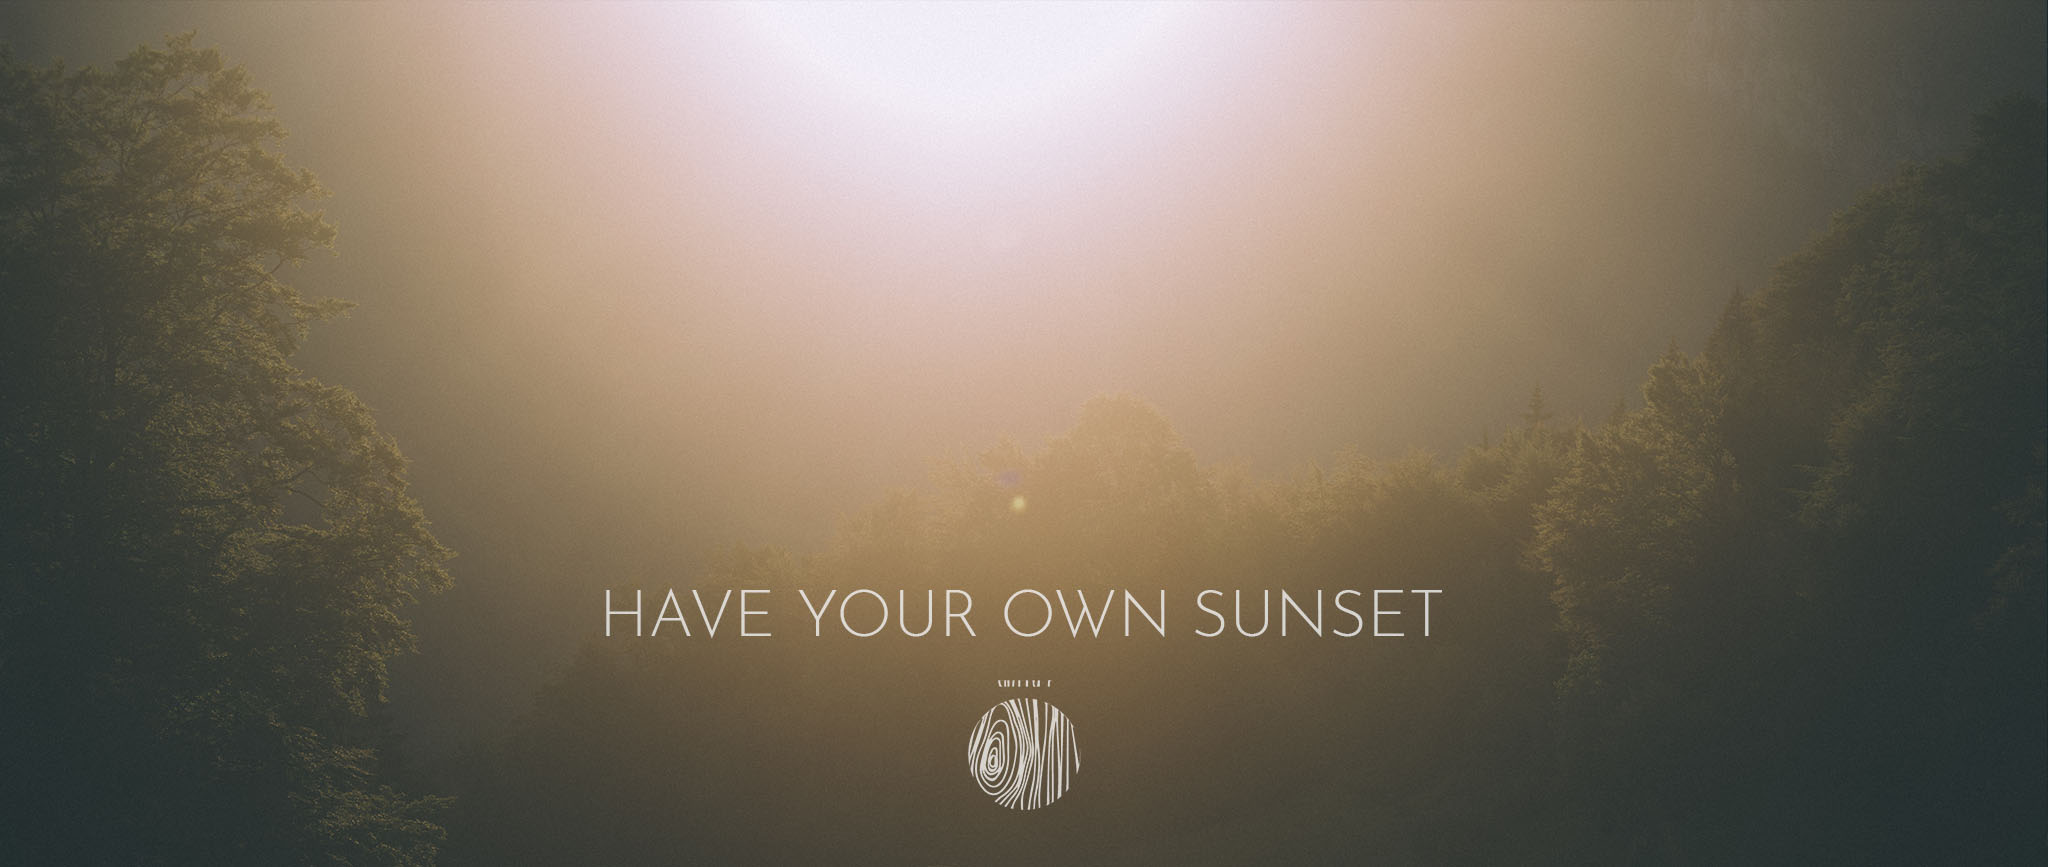 have your own sunset